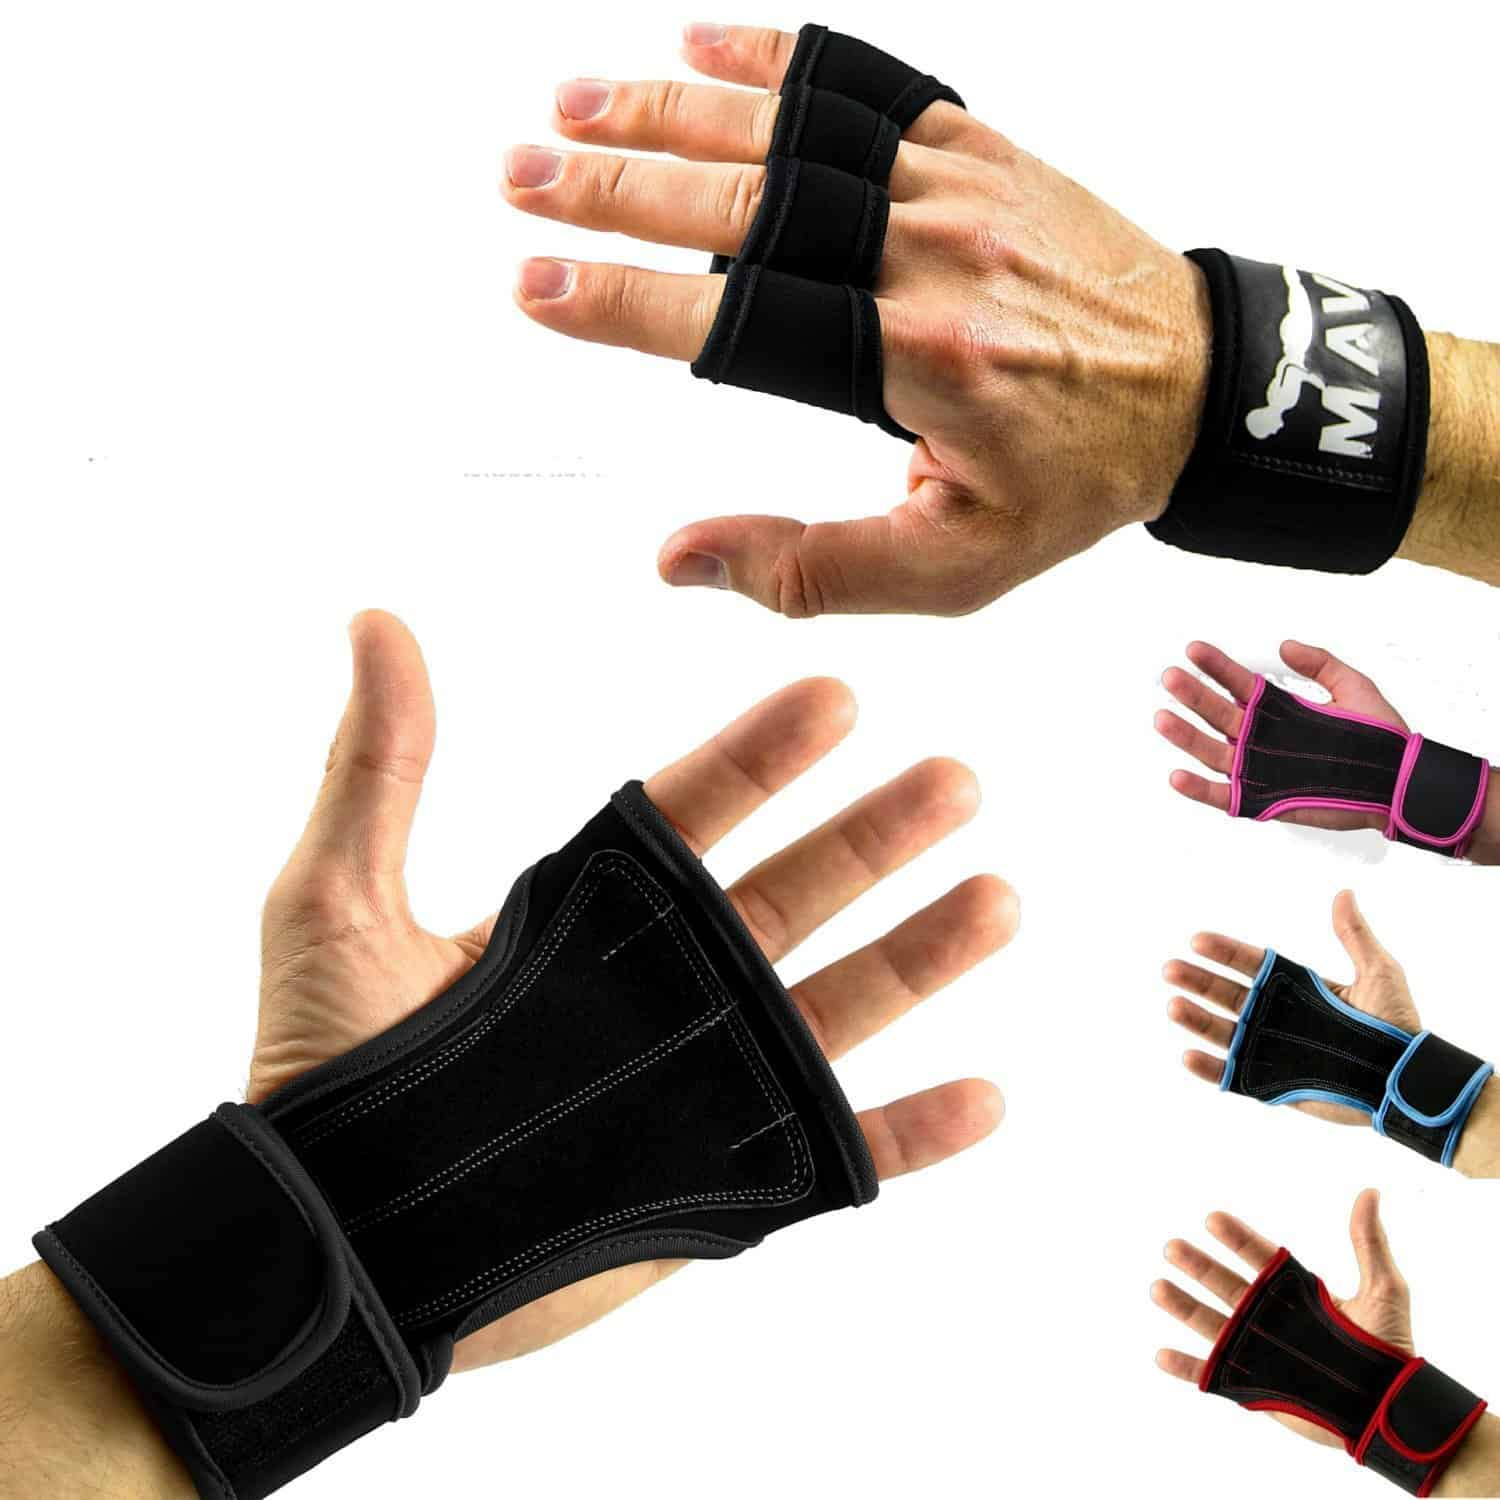 Strong Grip Cross Training Gloves By Mava Sports